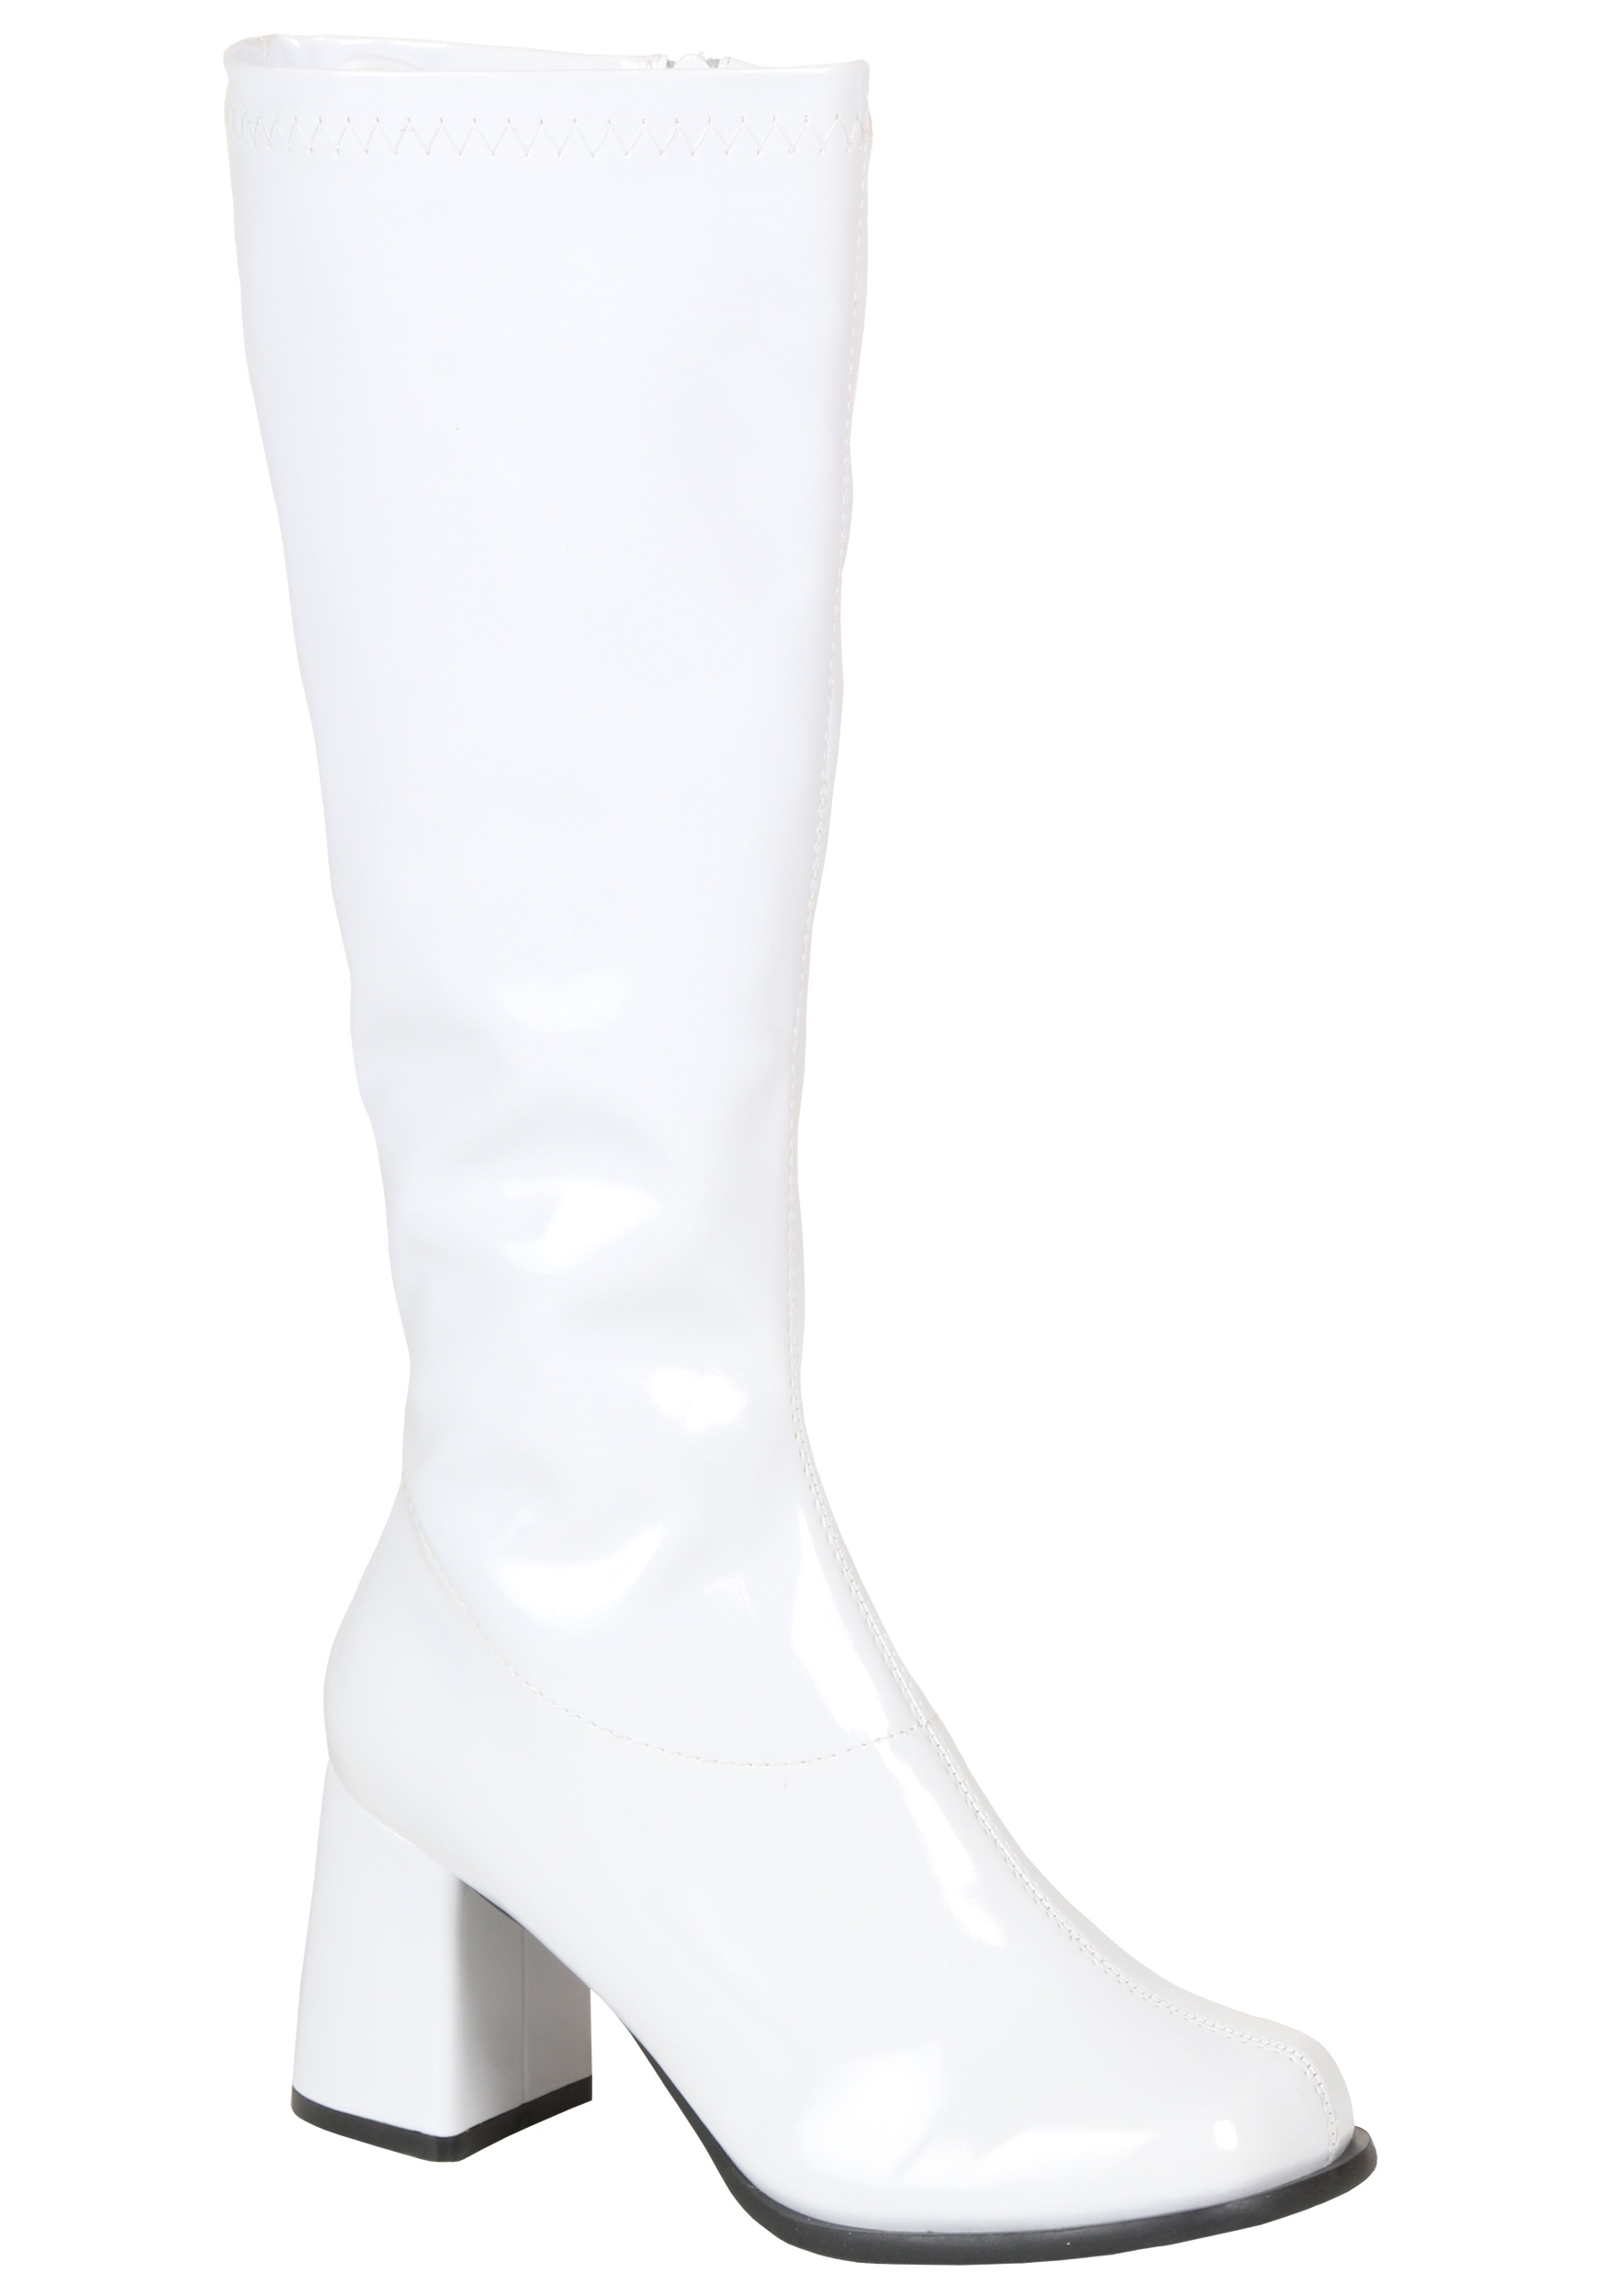 White Knee High Go Go Boots Women S Sexy Halloween Boots